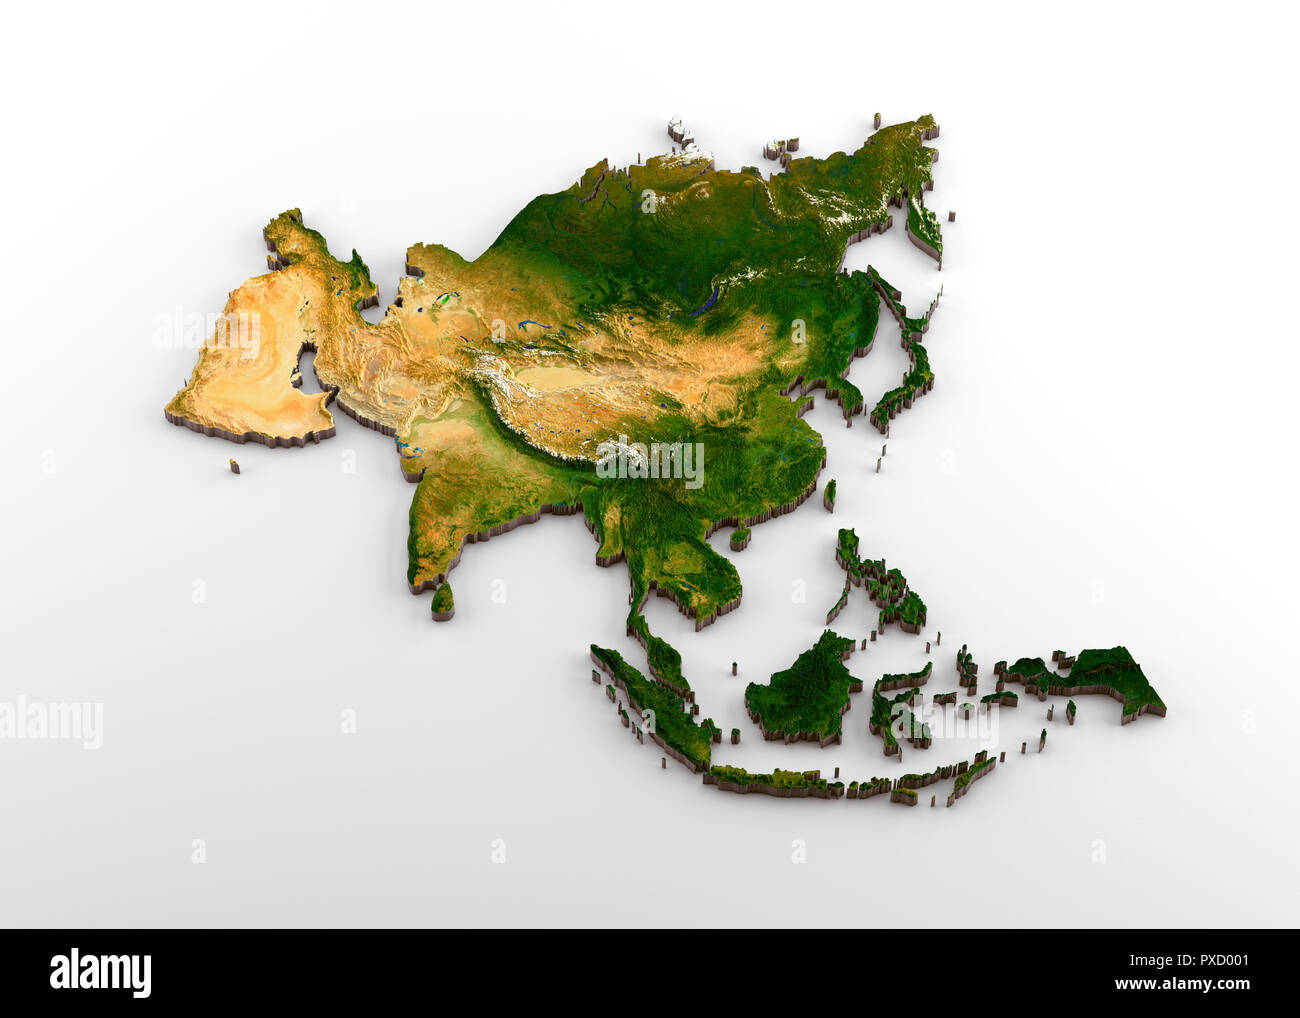 Realistic 3D Extruded Map of Asian Continent (including Indian sub-continent, East Asia, Russia and Middle-East) - Stock Image